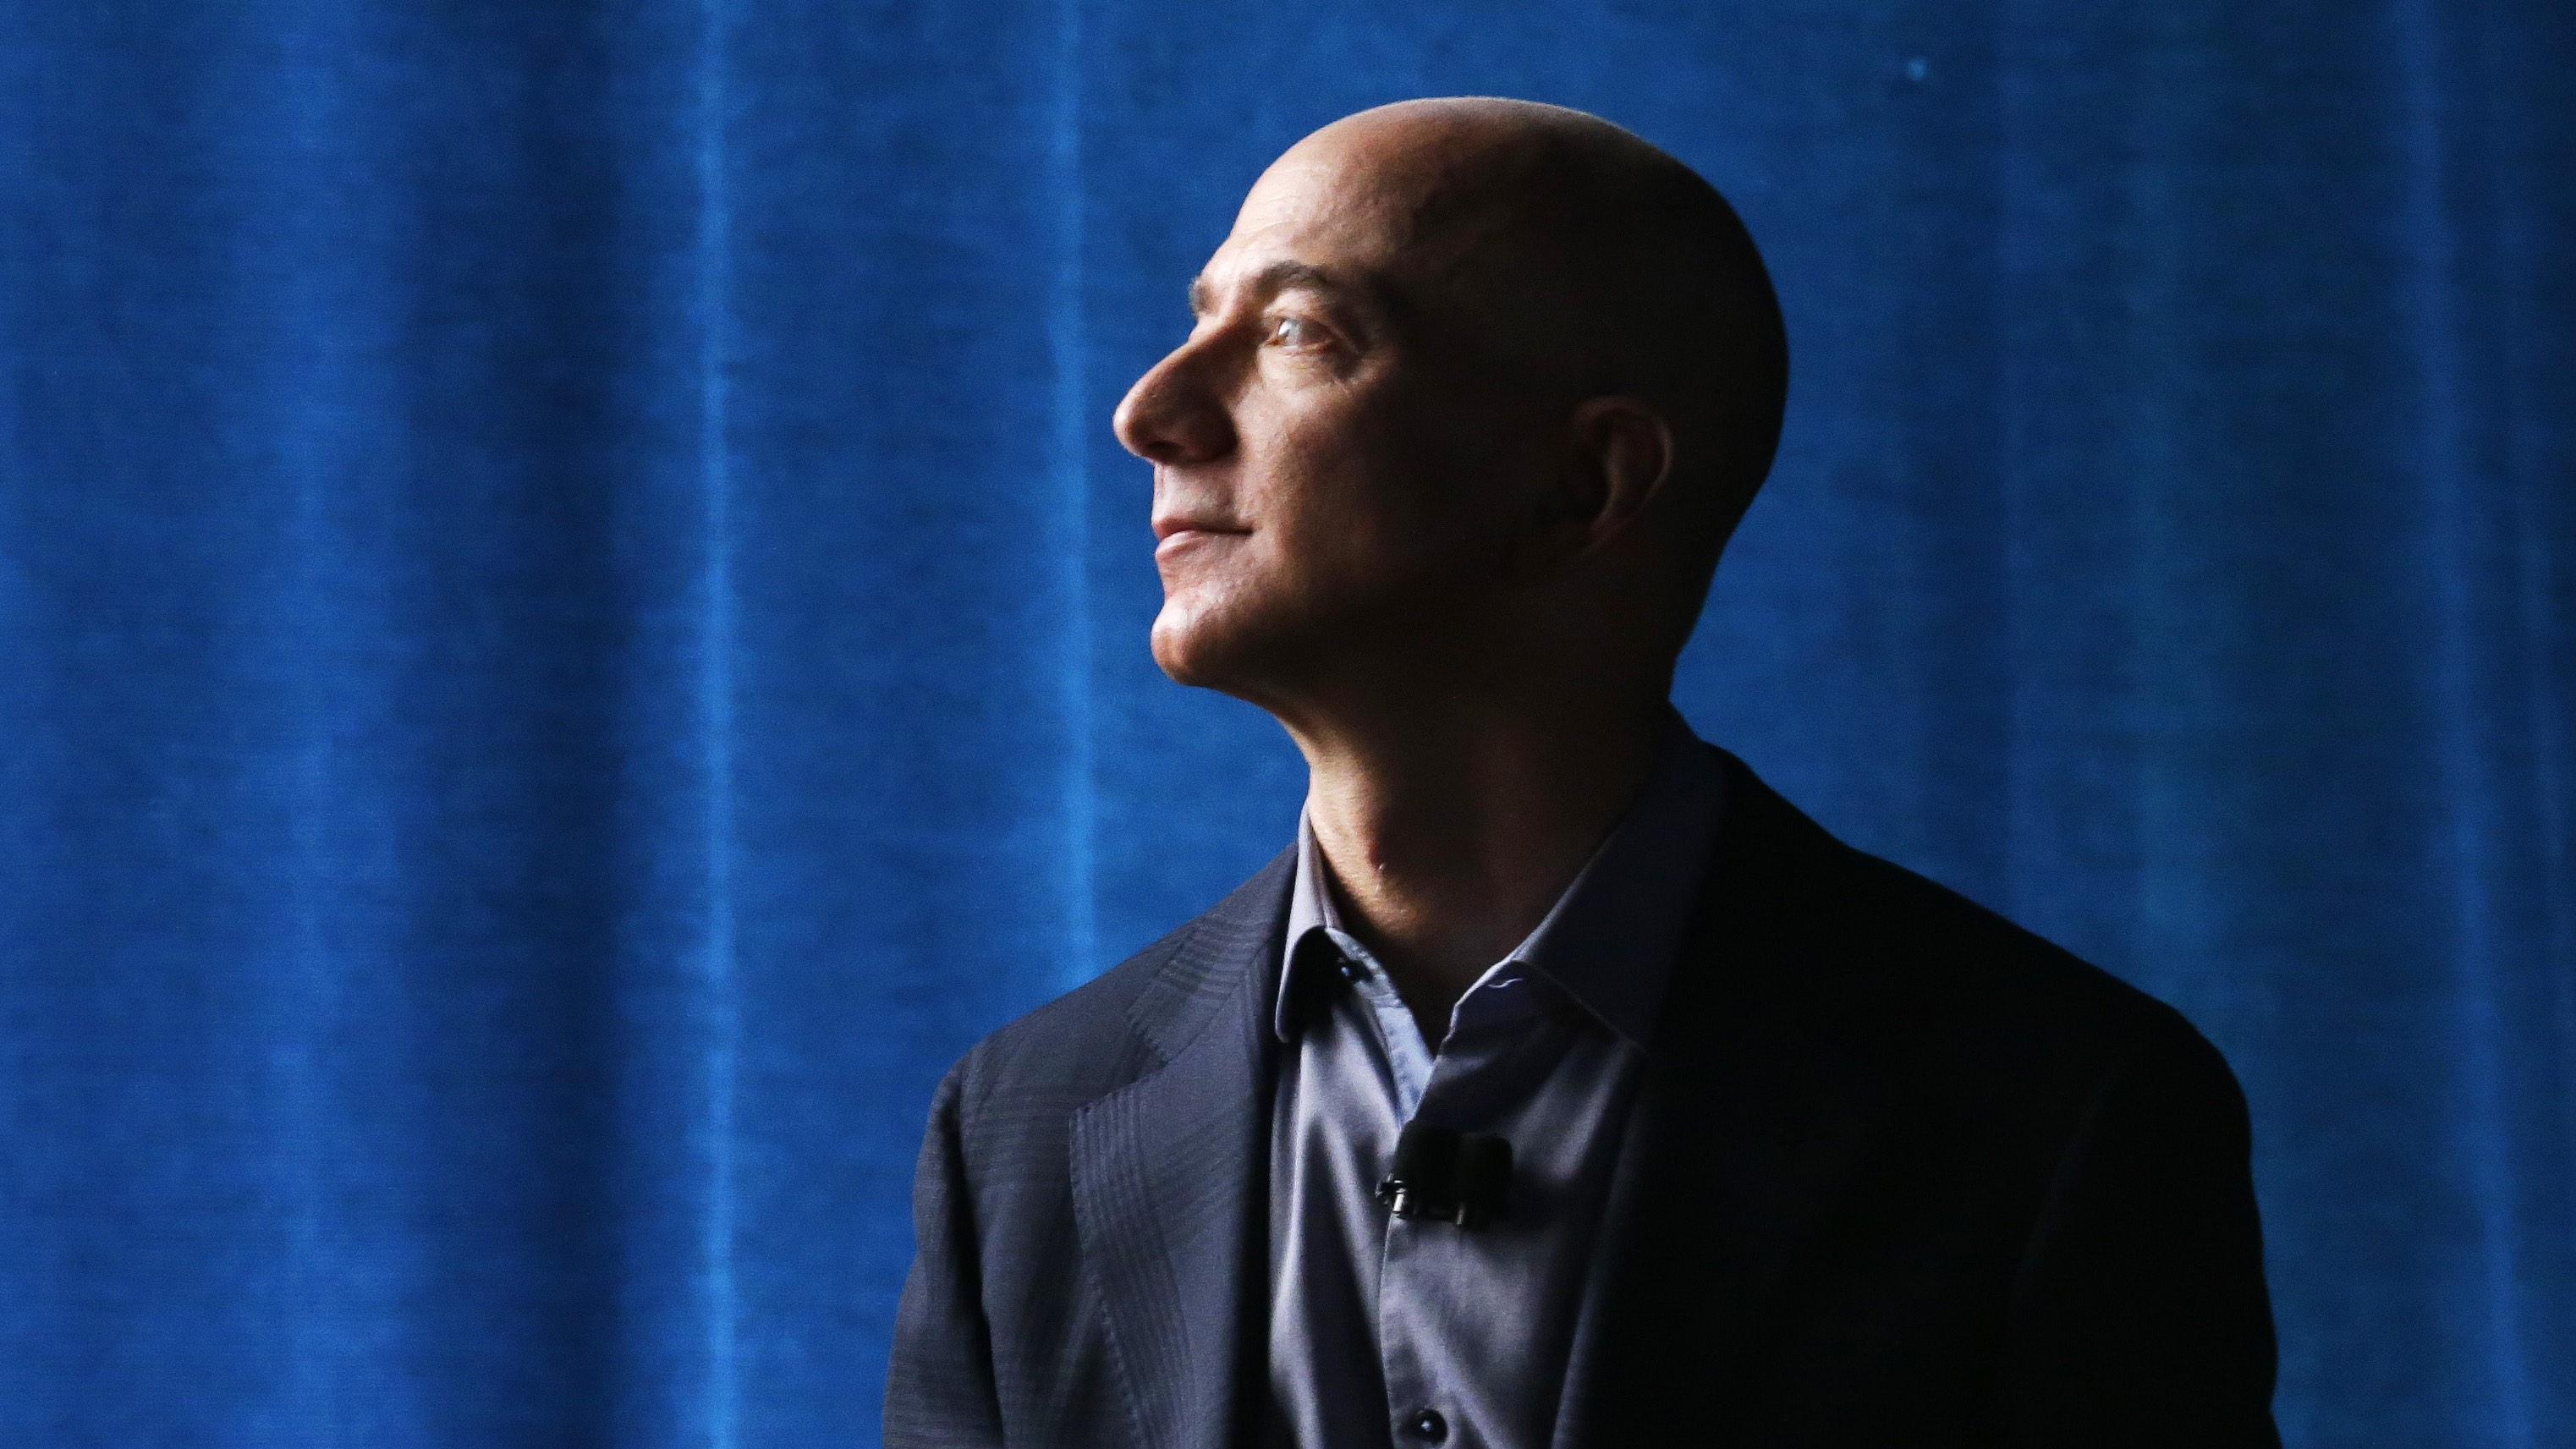 Amazon CEO Jeff Bezos watches a video presentation from the wings during the launch of the new Amazon Fire Phone, Wednesday, June 18, 2014, in Seattle.